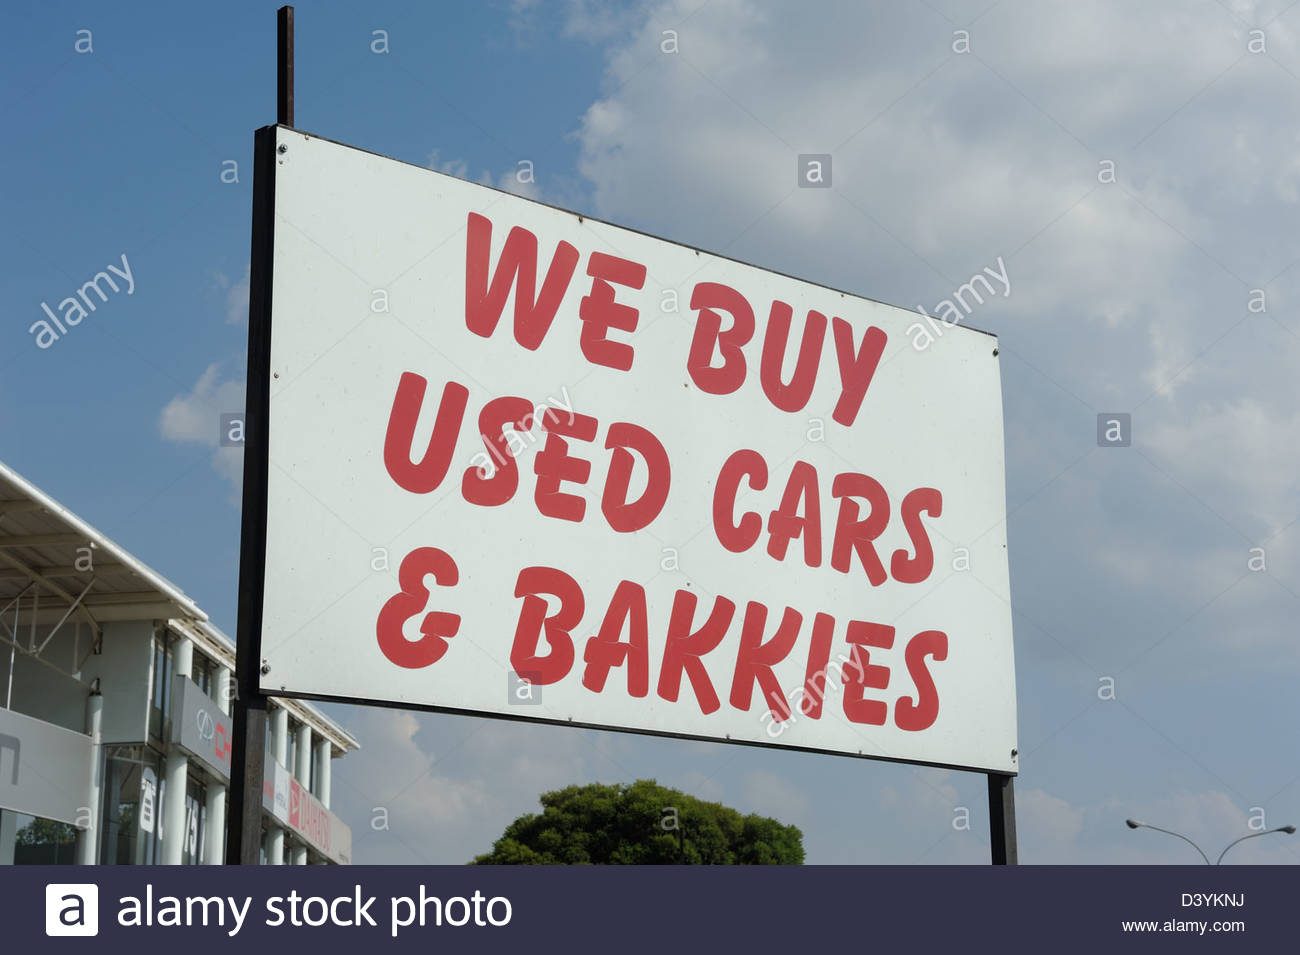 Johannesburg RSA Used car lot buying used cars and bakkies (pick-ups ...